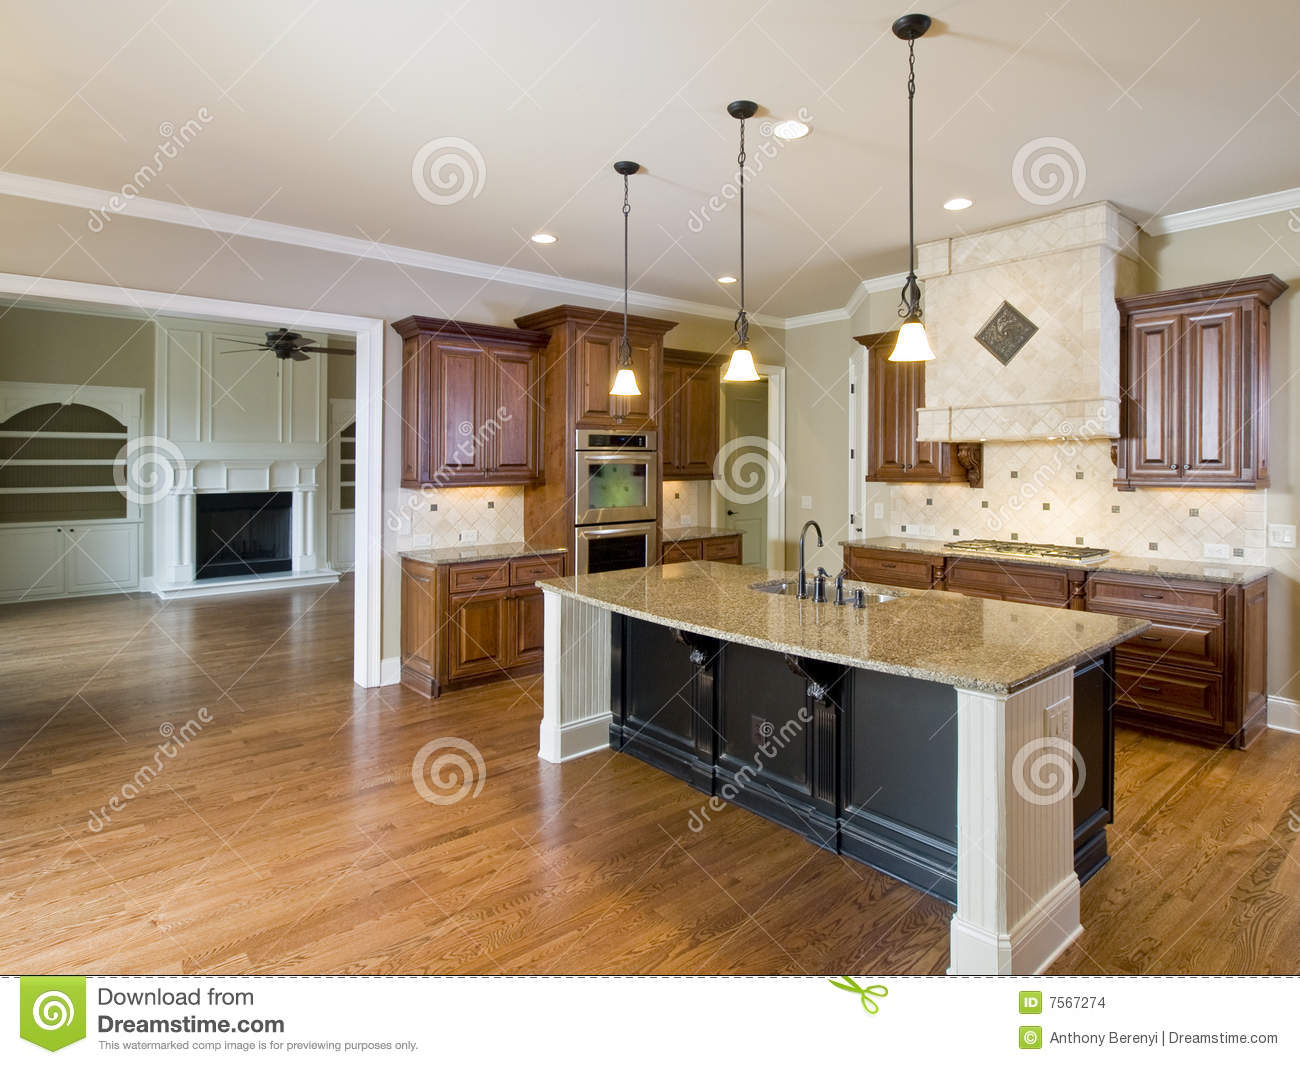 Classic Country Kitchen together with British American Household Staffing Design likewise Neo Italian Renaissance Townhouse Mansion In Manhattan besides Red And White moreover 449797081513853200. on classic luxury home interiors